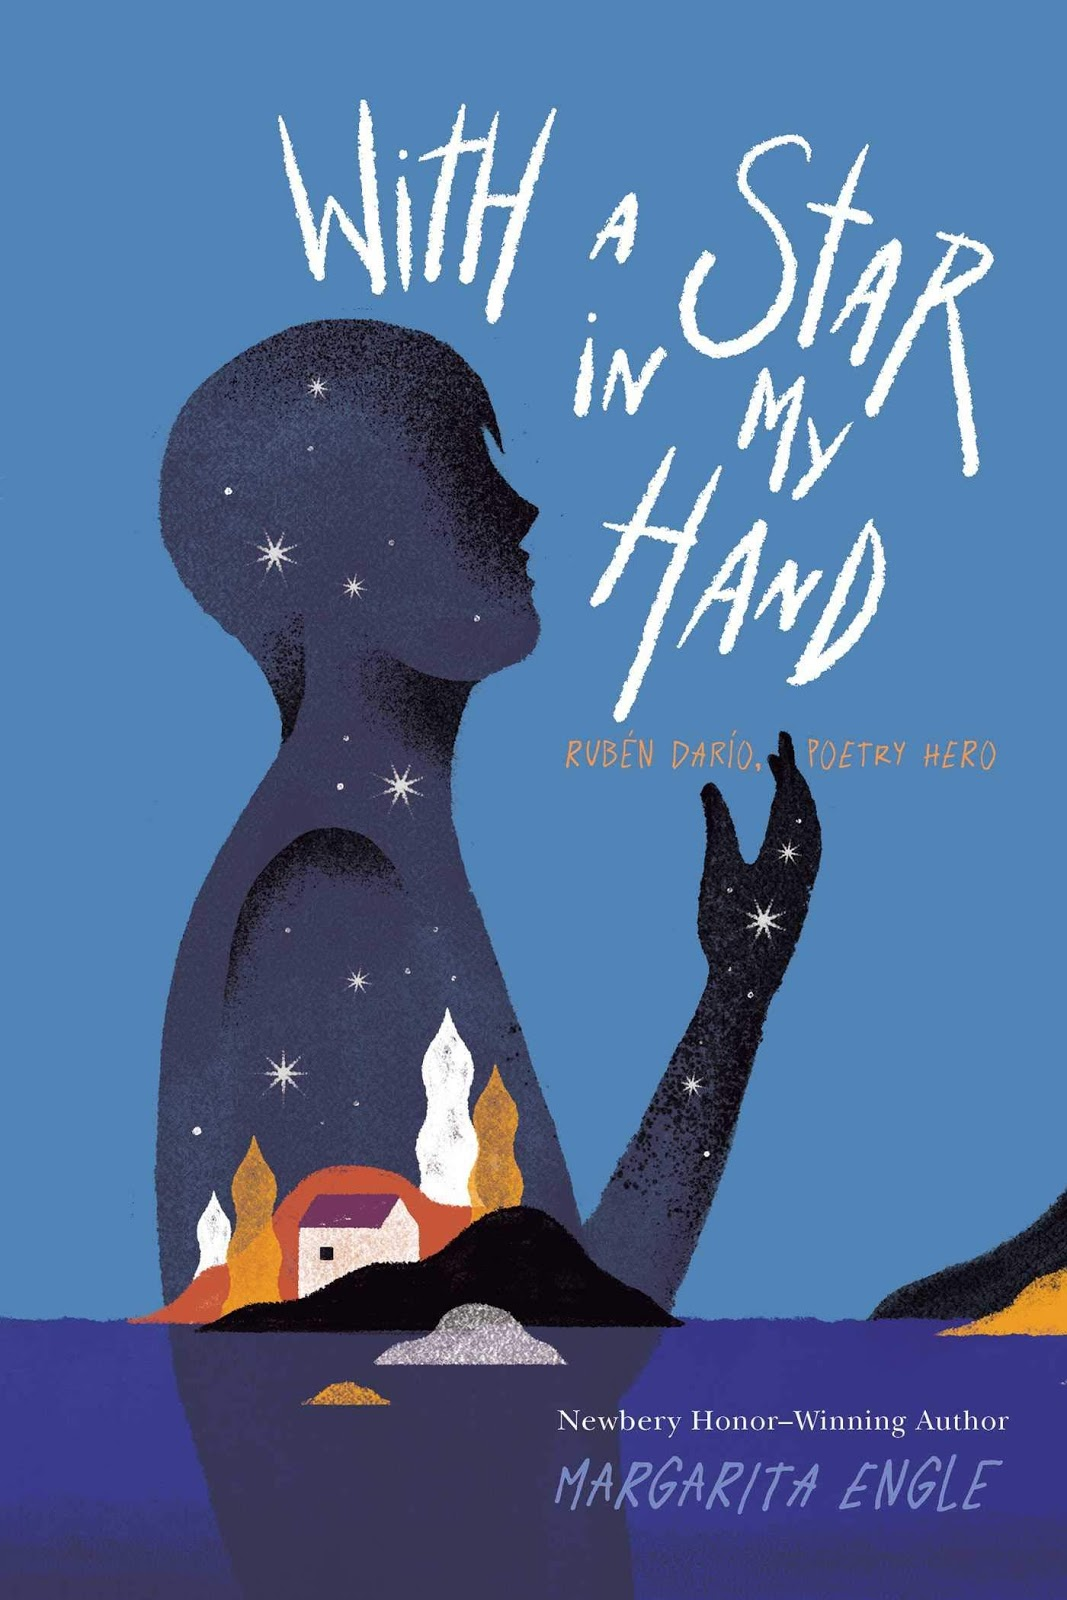 Cover of Star In My Hand depicting a silhouette in blue with stars on it looking right with a small island of colorful buildings in front of it.